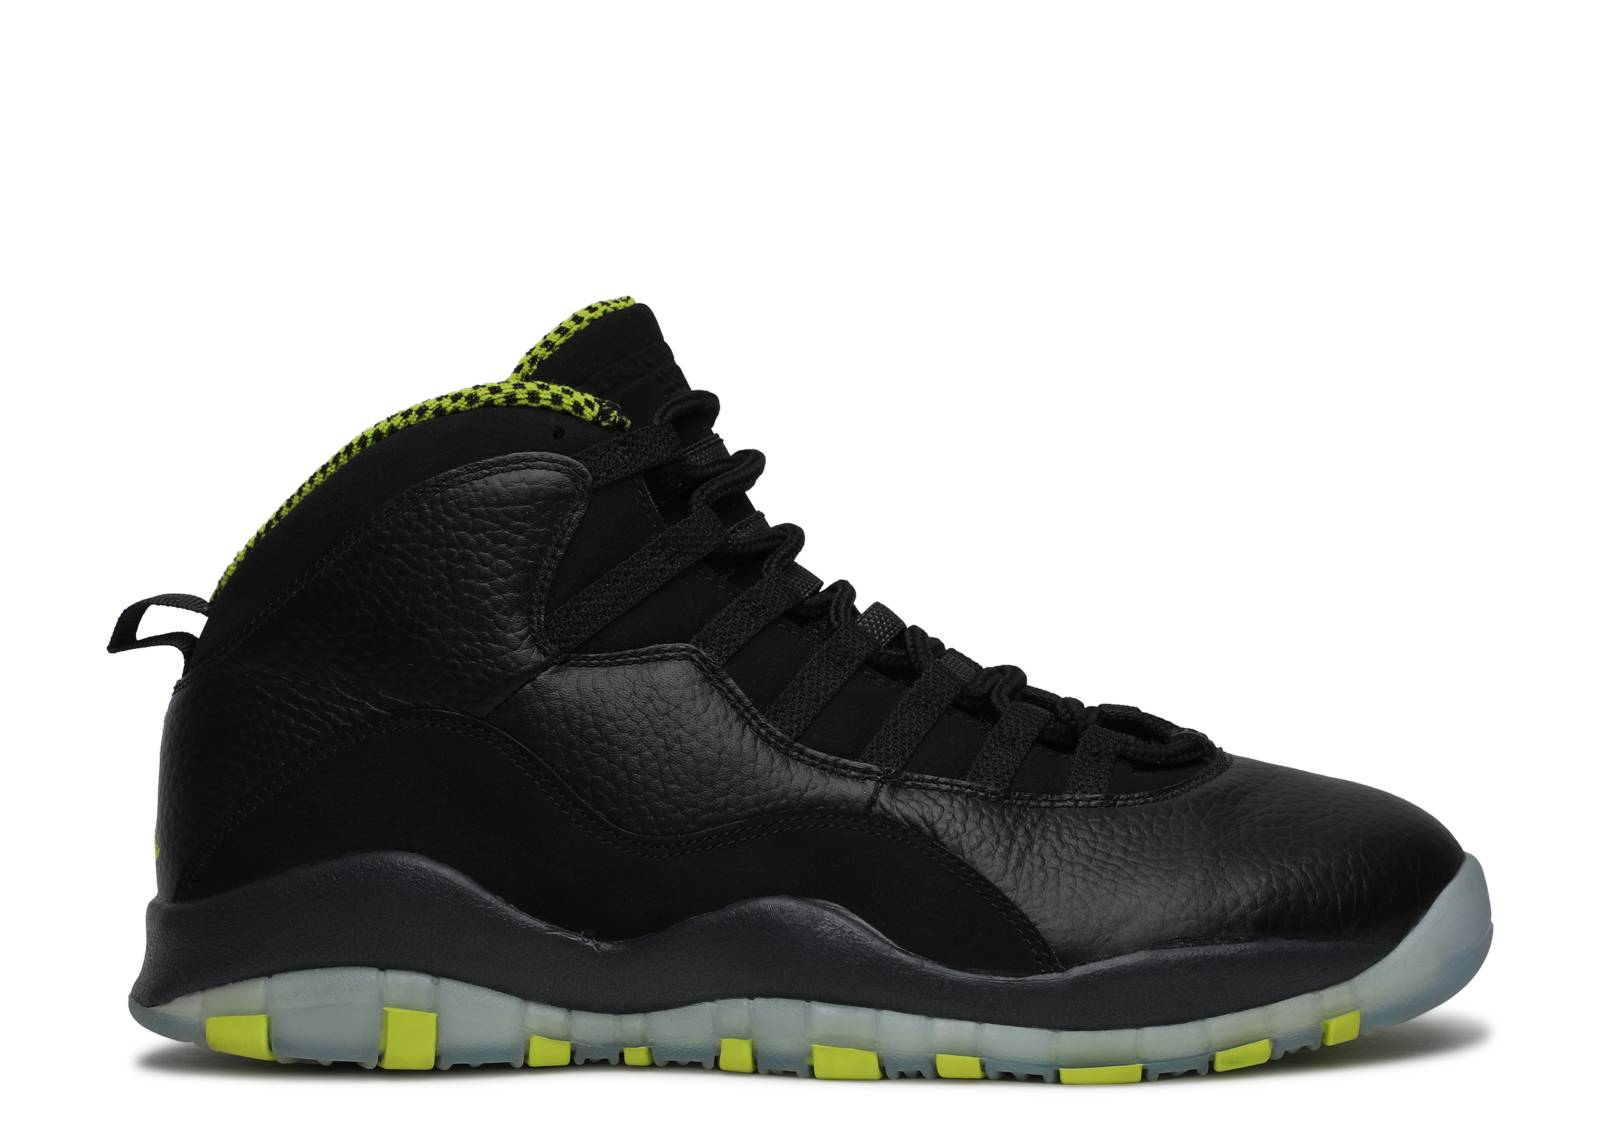 new arrival eb162 77821 air jordan retro 10